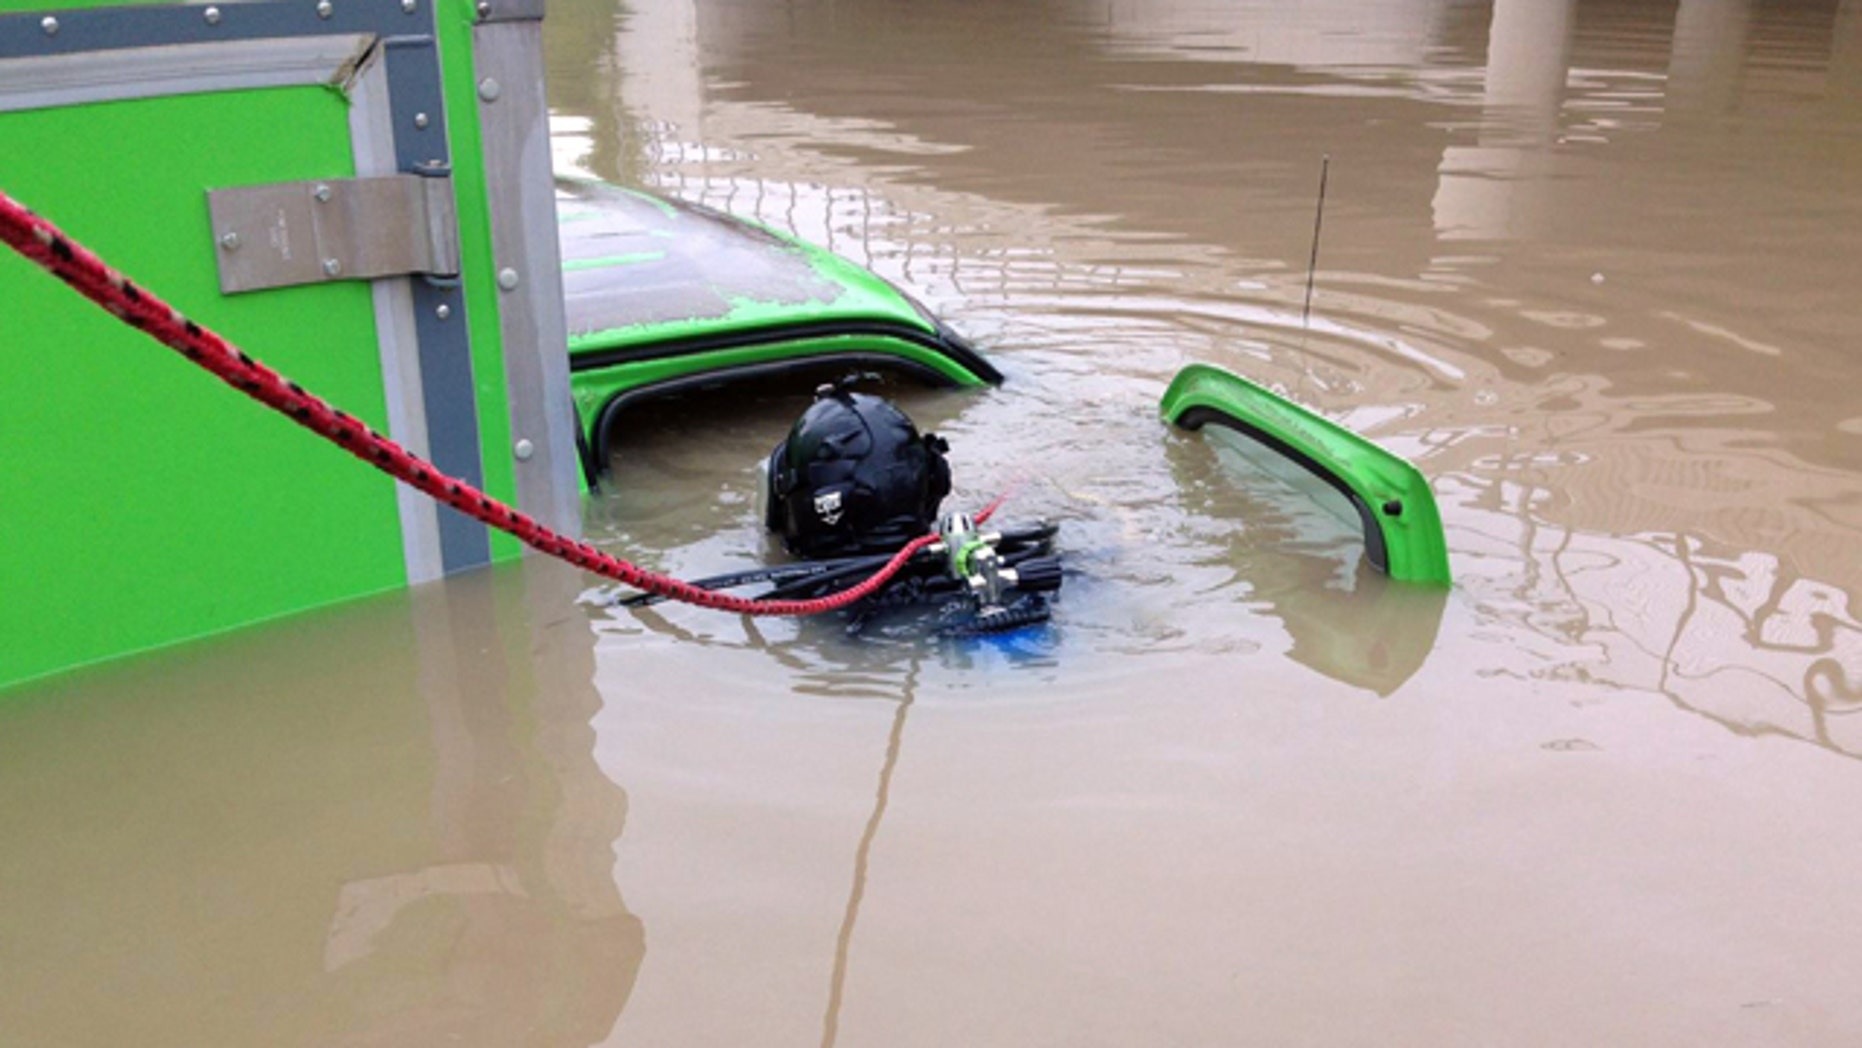 August 12, 2014: In a photo provided by the Michigan State Police, a diver with the department's Underwater Recovery Unit inspects a vehicle submerged on a Detroit area freeway a day after heavy of rain. (AP Photo/Michigan State Police)